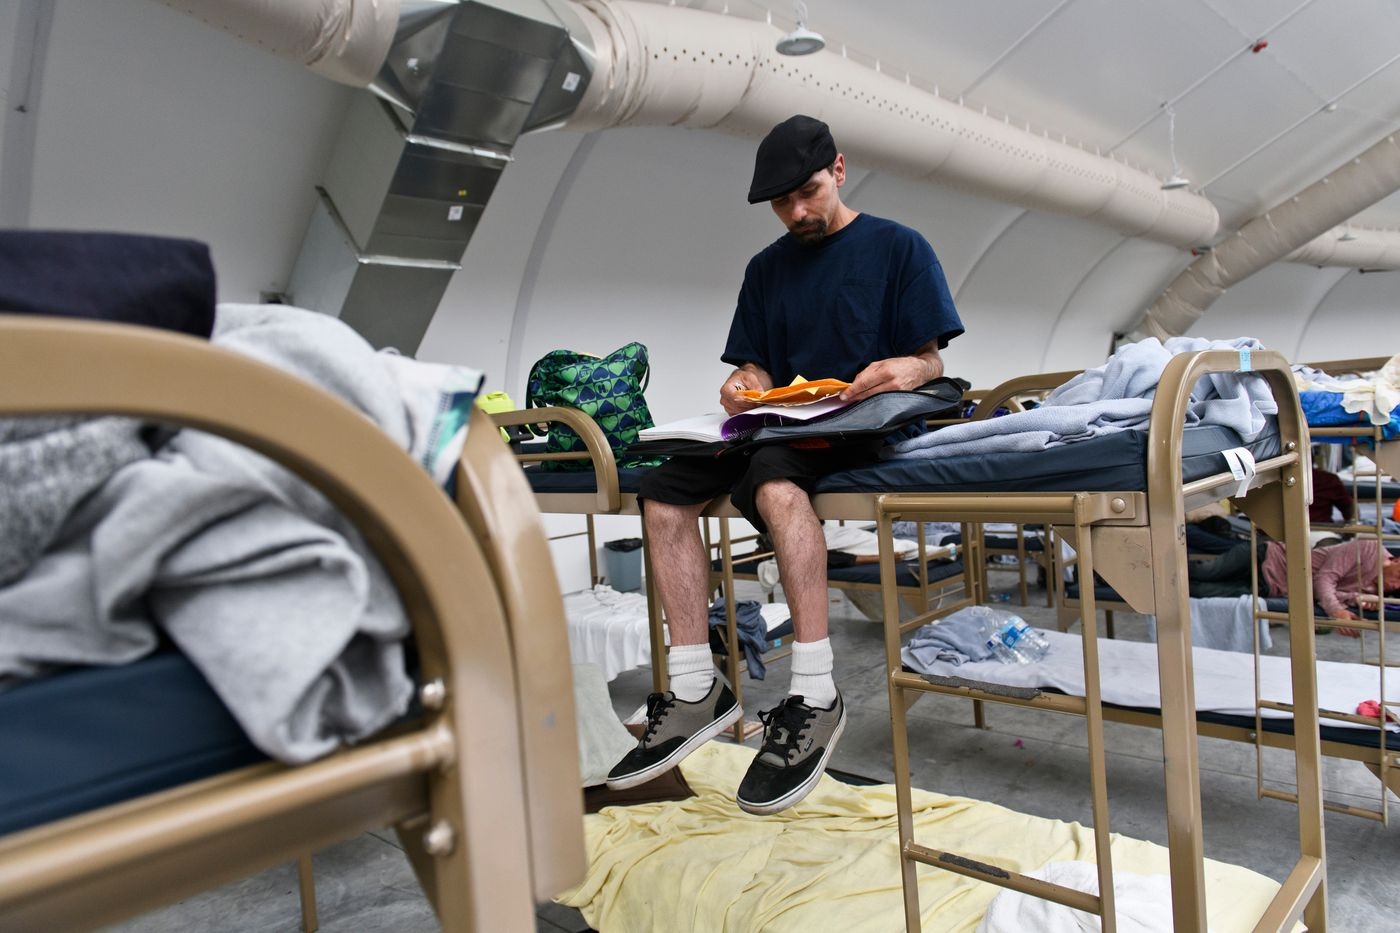 Jesse Kramer writes phone numbers and other information in his notebook at the Nevada CARES Campus. 'I'm just trying to get my life together. I know there's resources, ' he said of the facility. (Marc Lester / ADN)